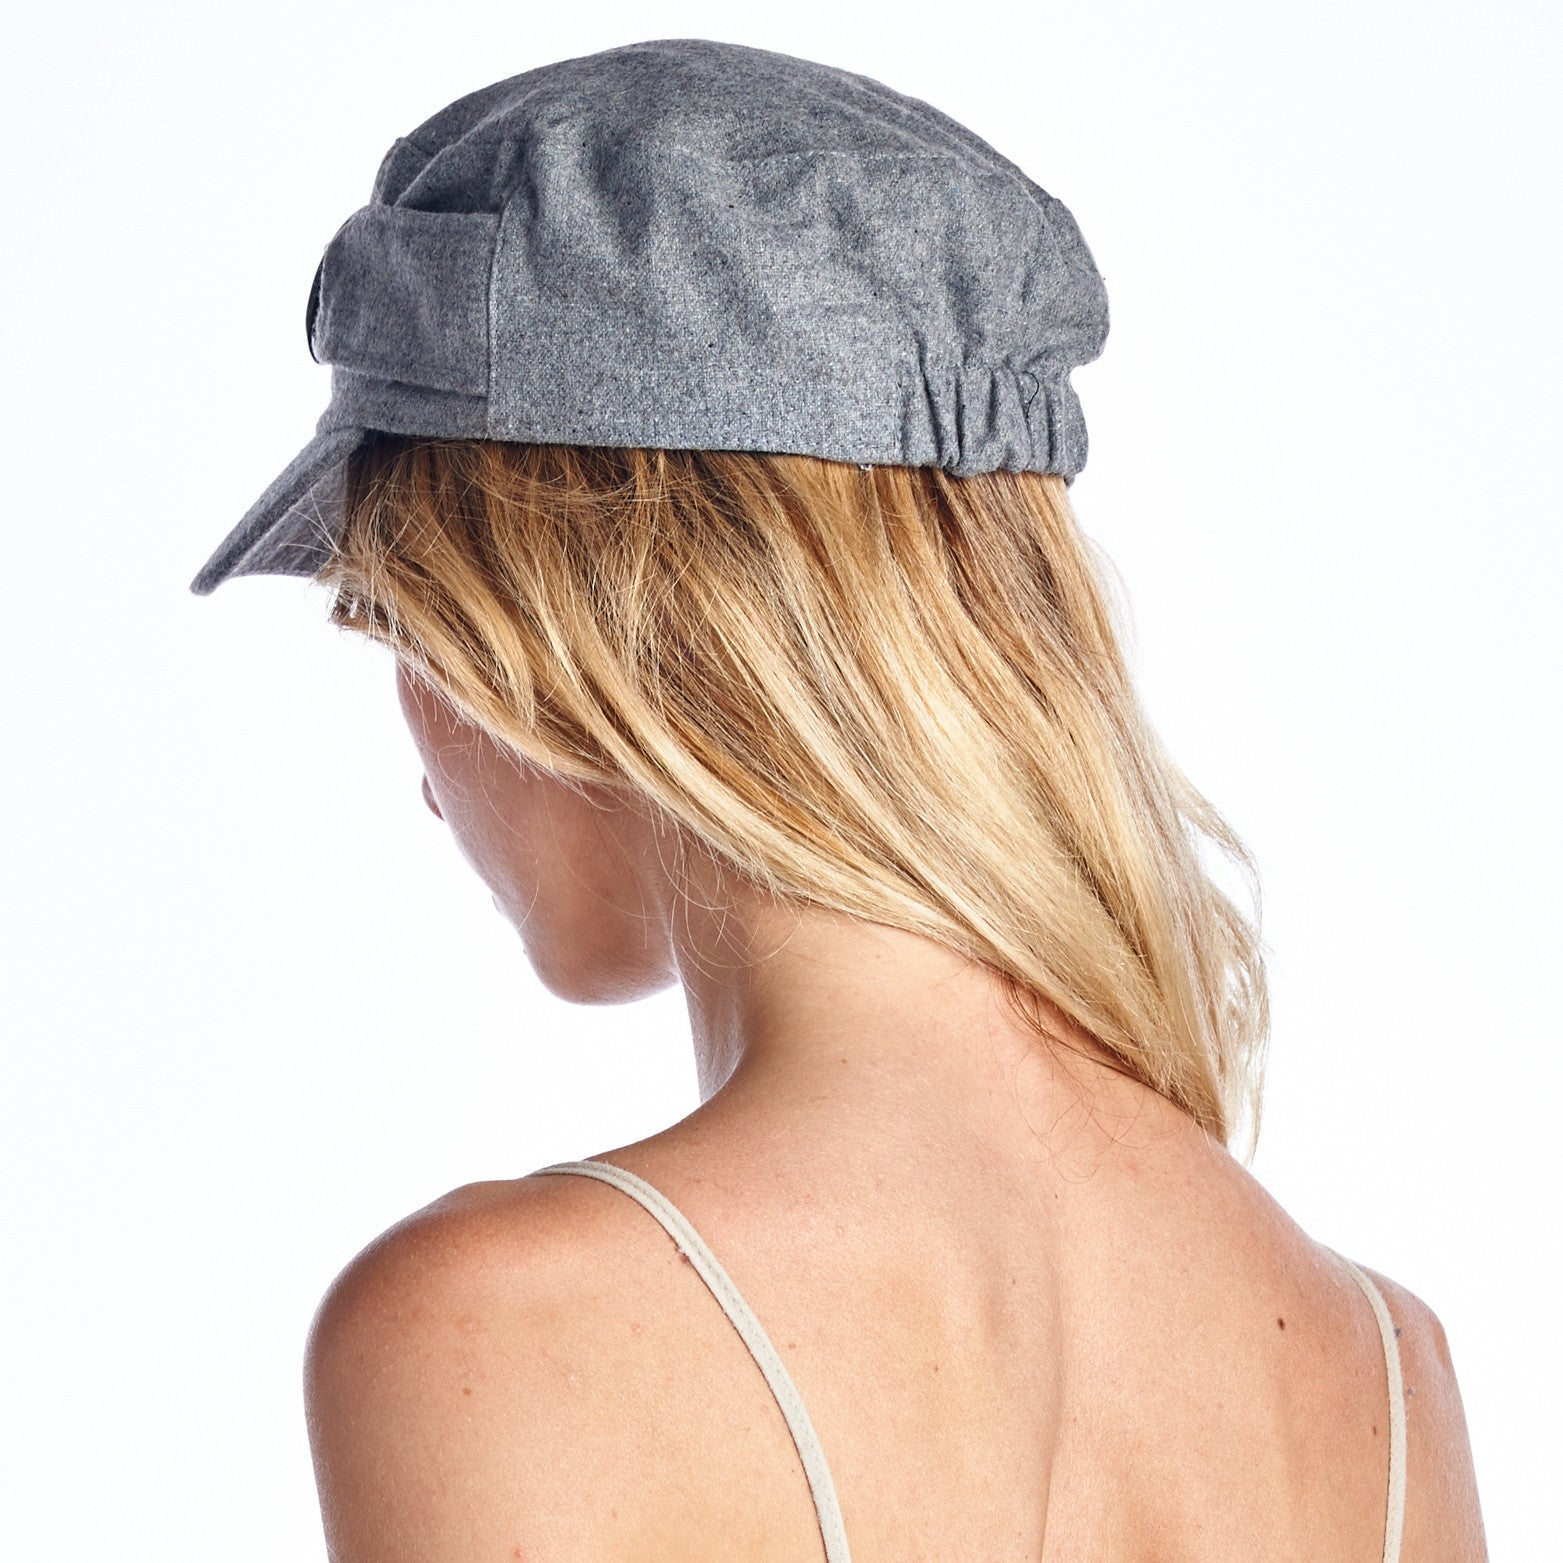 Wool Blend Military-Style Cap with Buckle